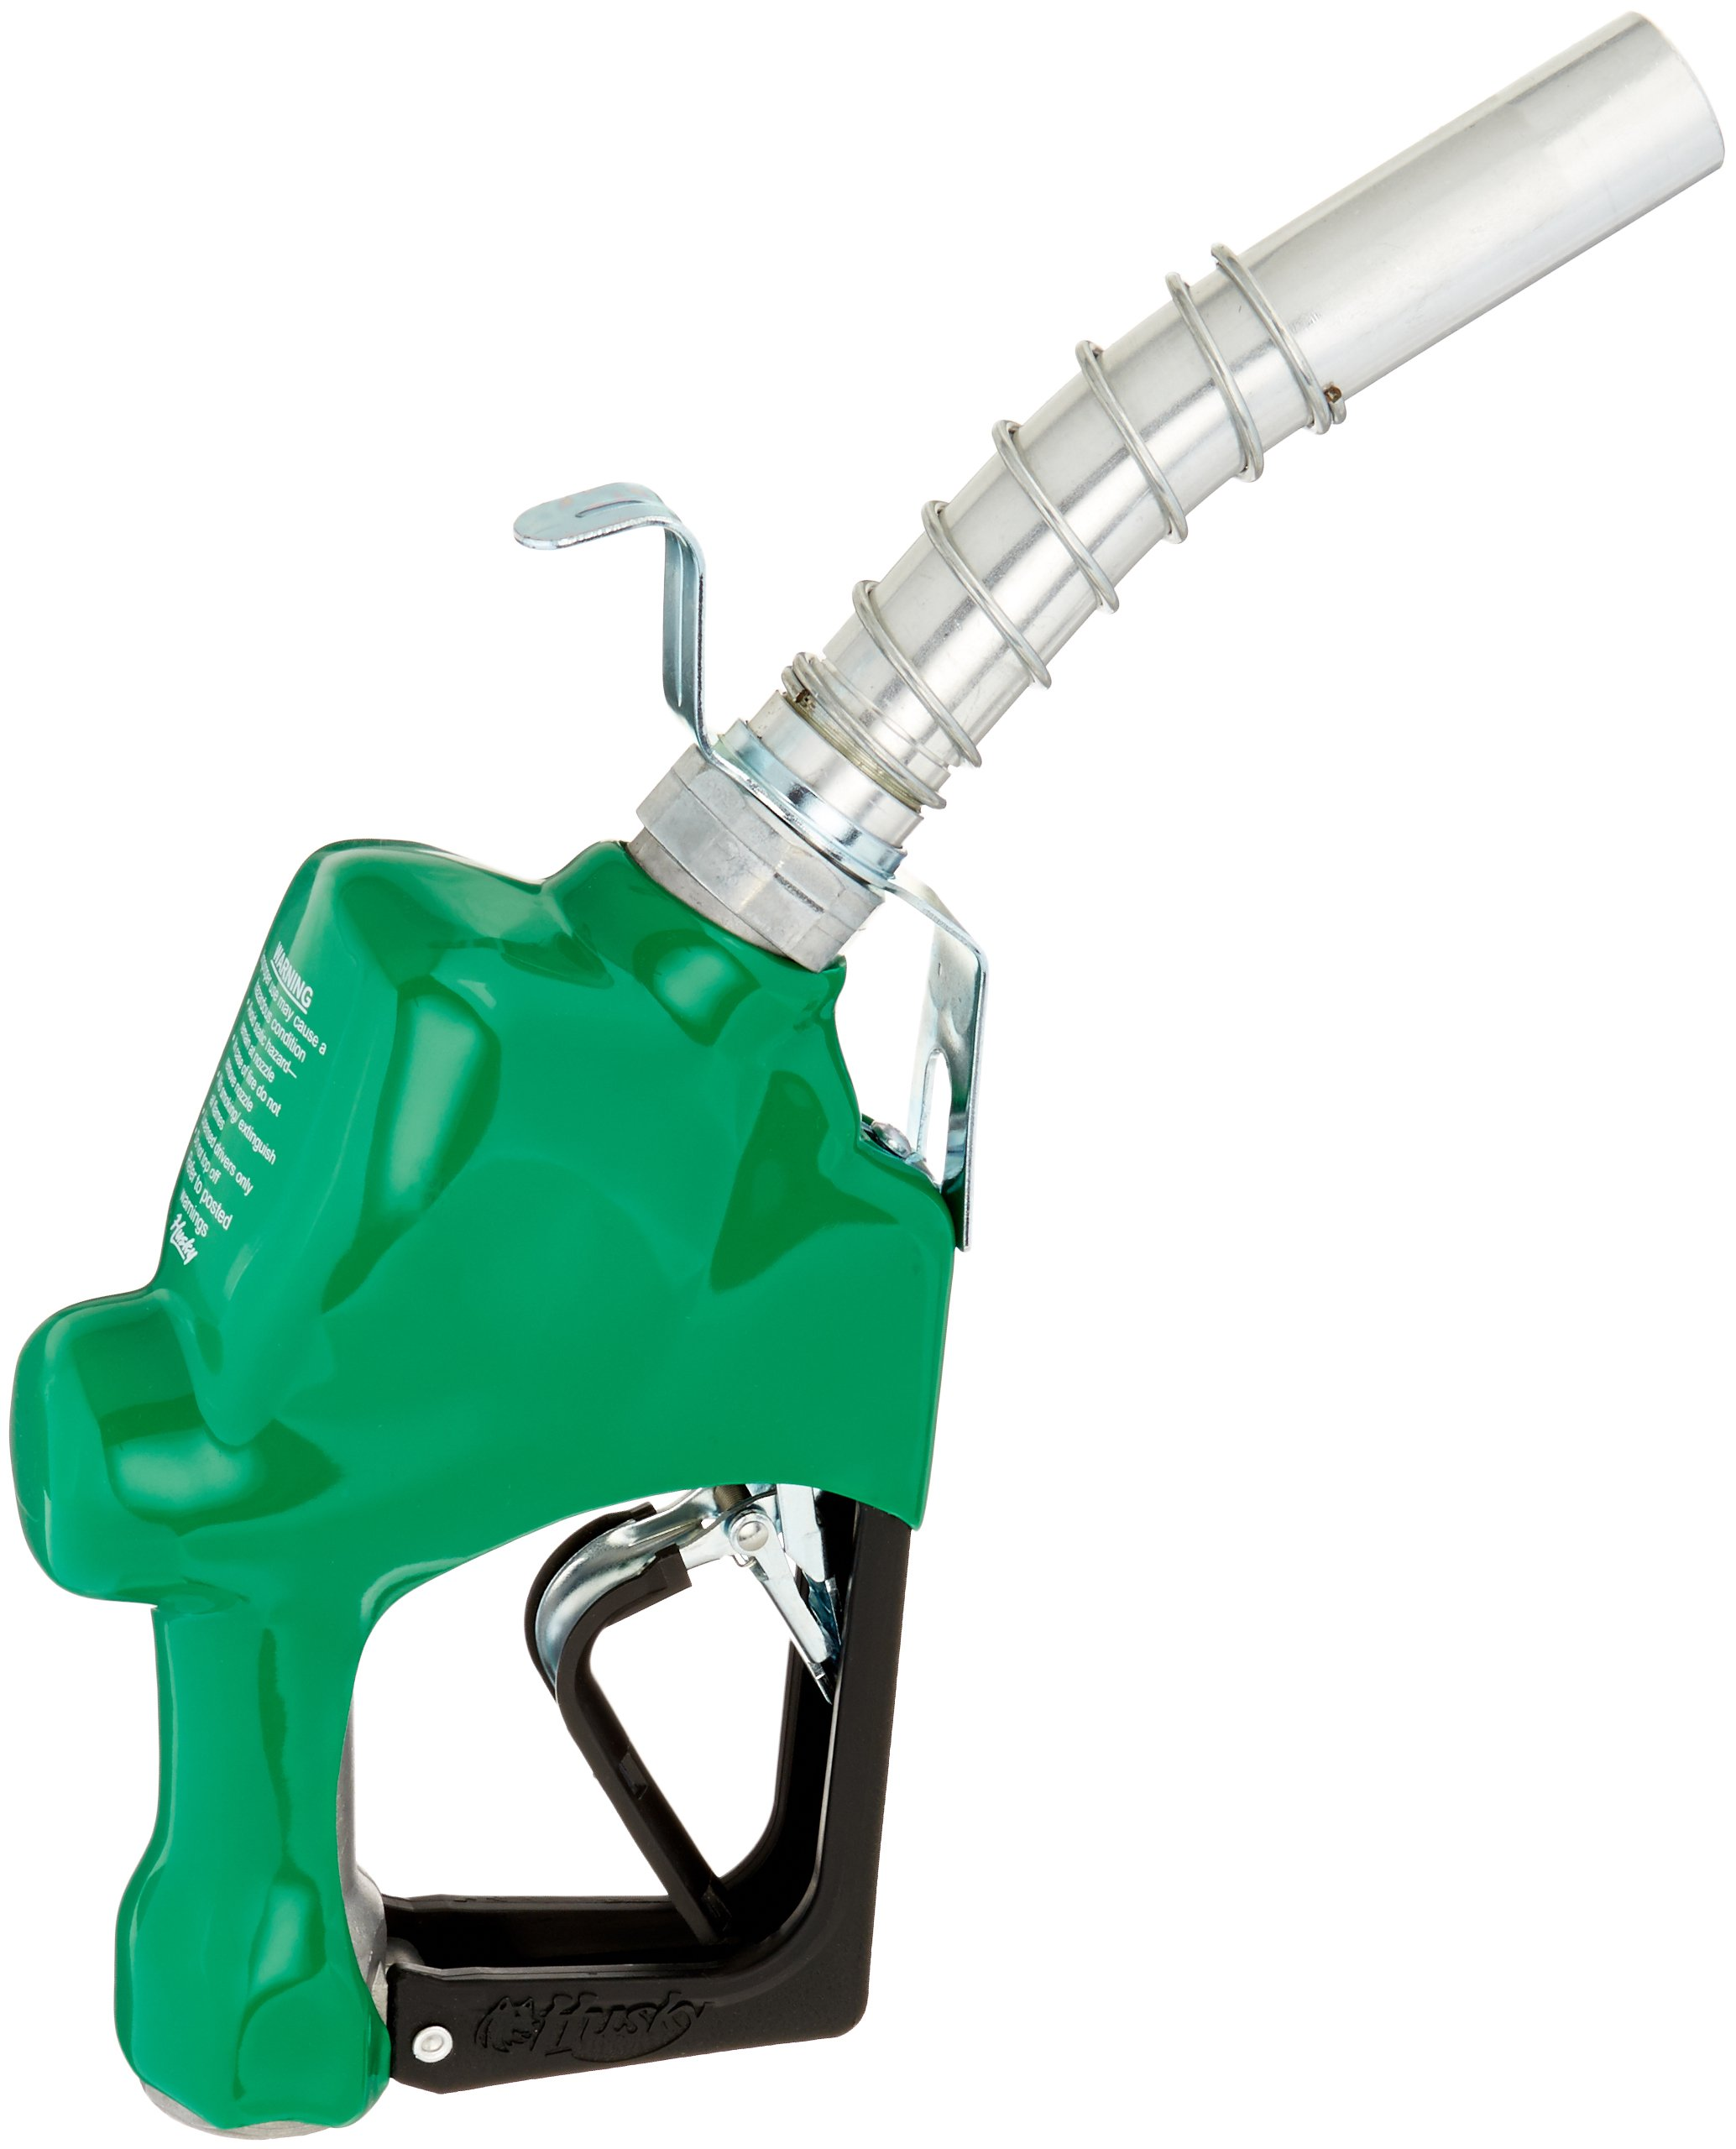 Husky 045710N-16 New 1GS Heavy Duty Diesel Nozzle with 3-Notch Hold Open Clip, Full Grip Guard, BP Green Hand Guard and Hanging Hook